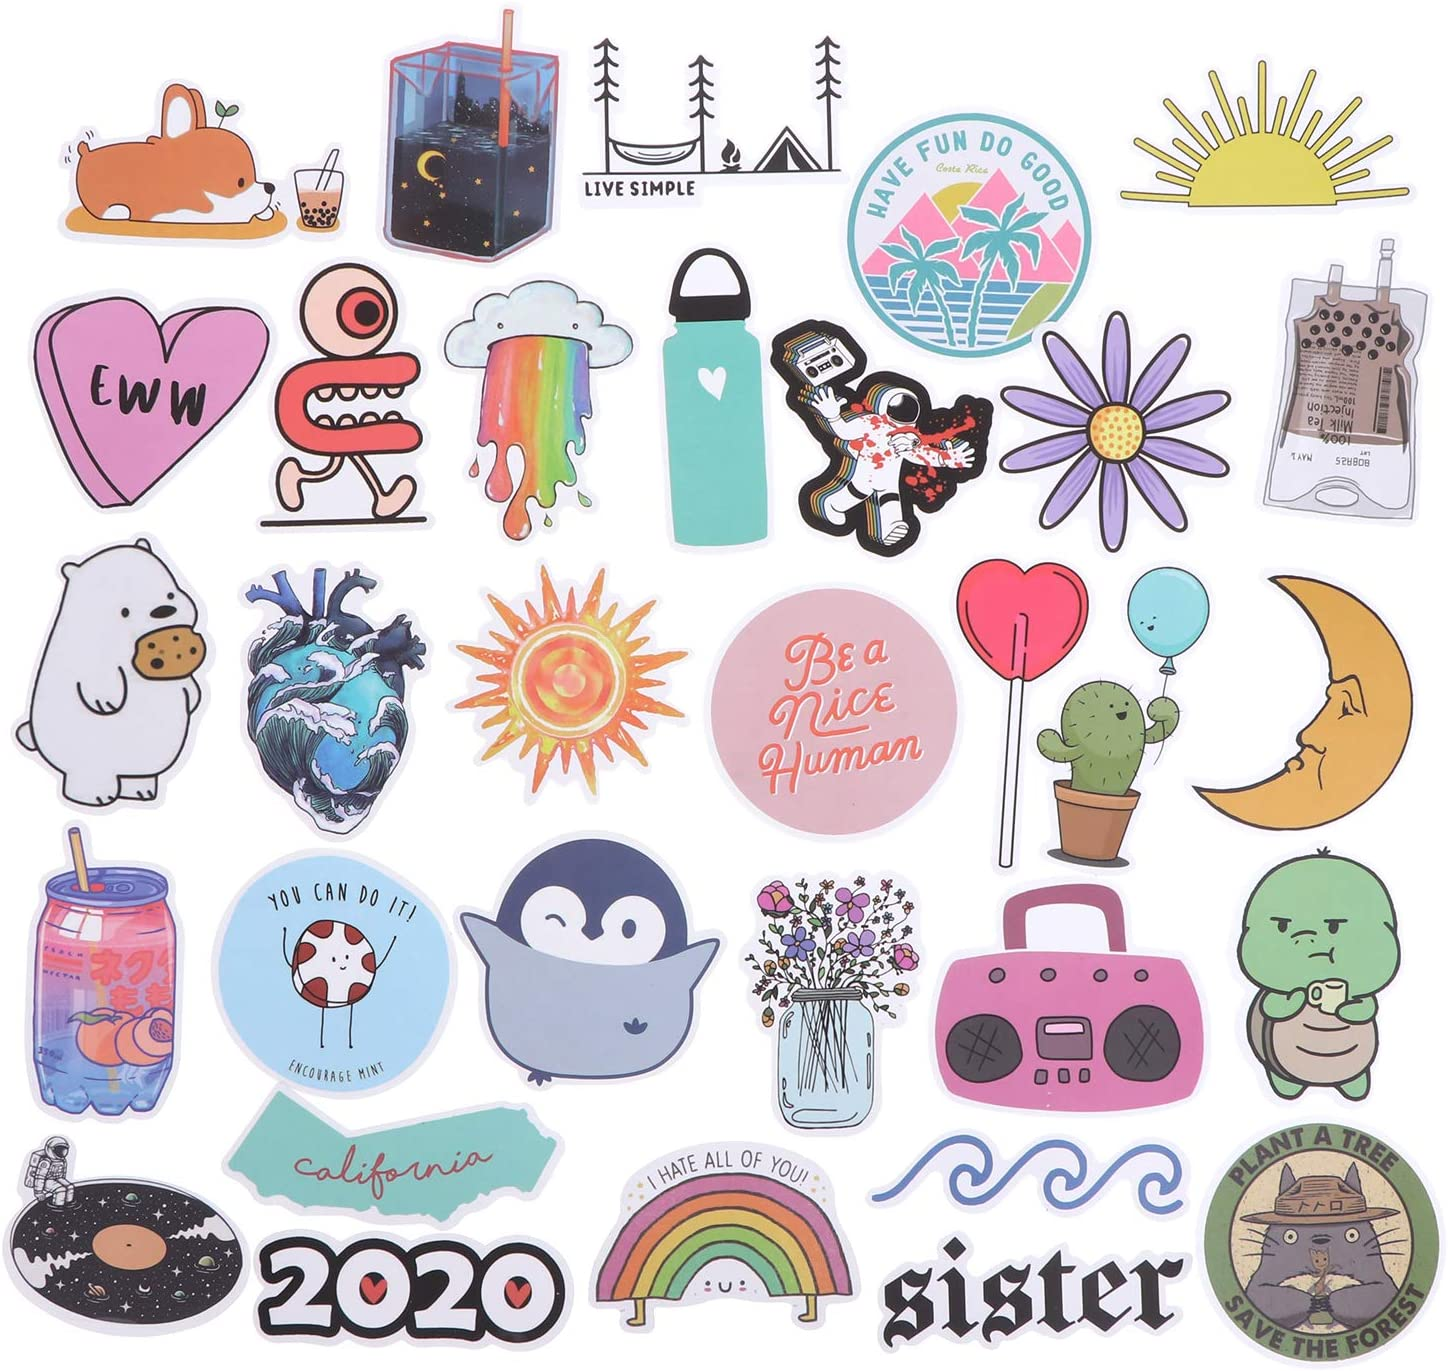 75 Pack Cute Stickers Laptop Stickers Waterproof Stickers for Water Bottles, Skateboards, Motorcycle Bicycle Luggage Laptop